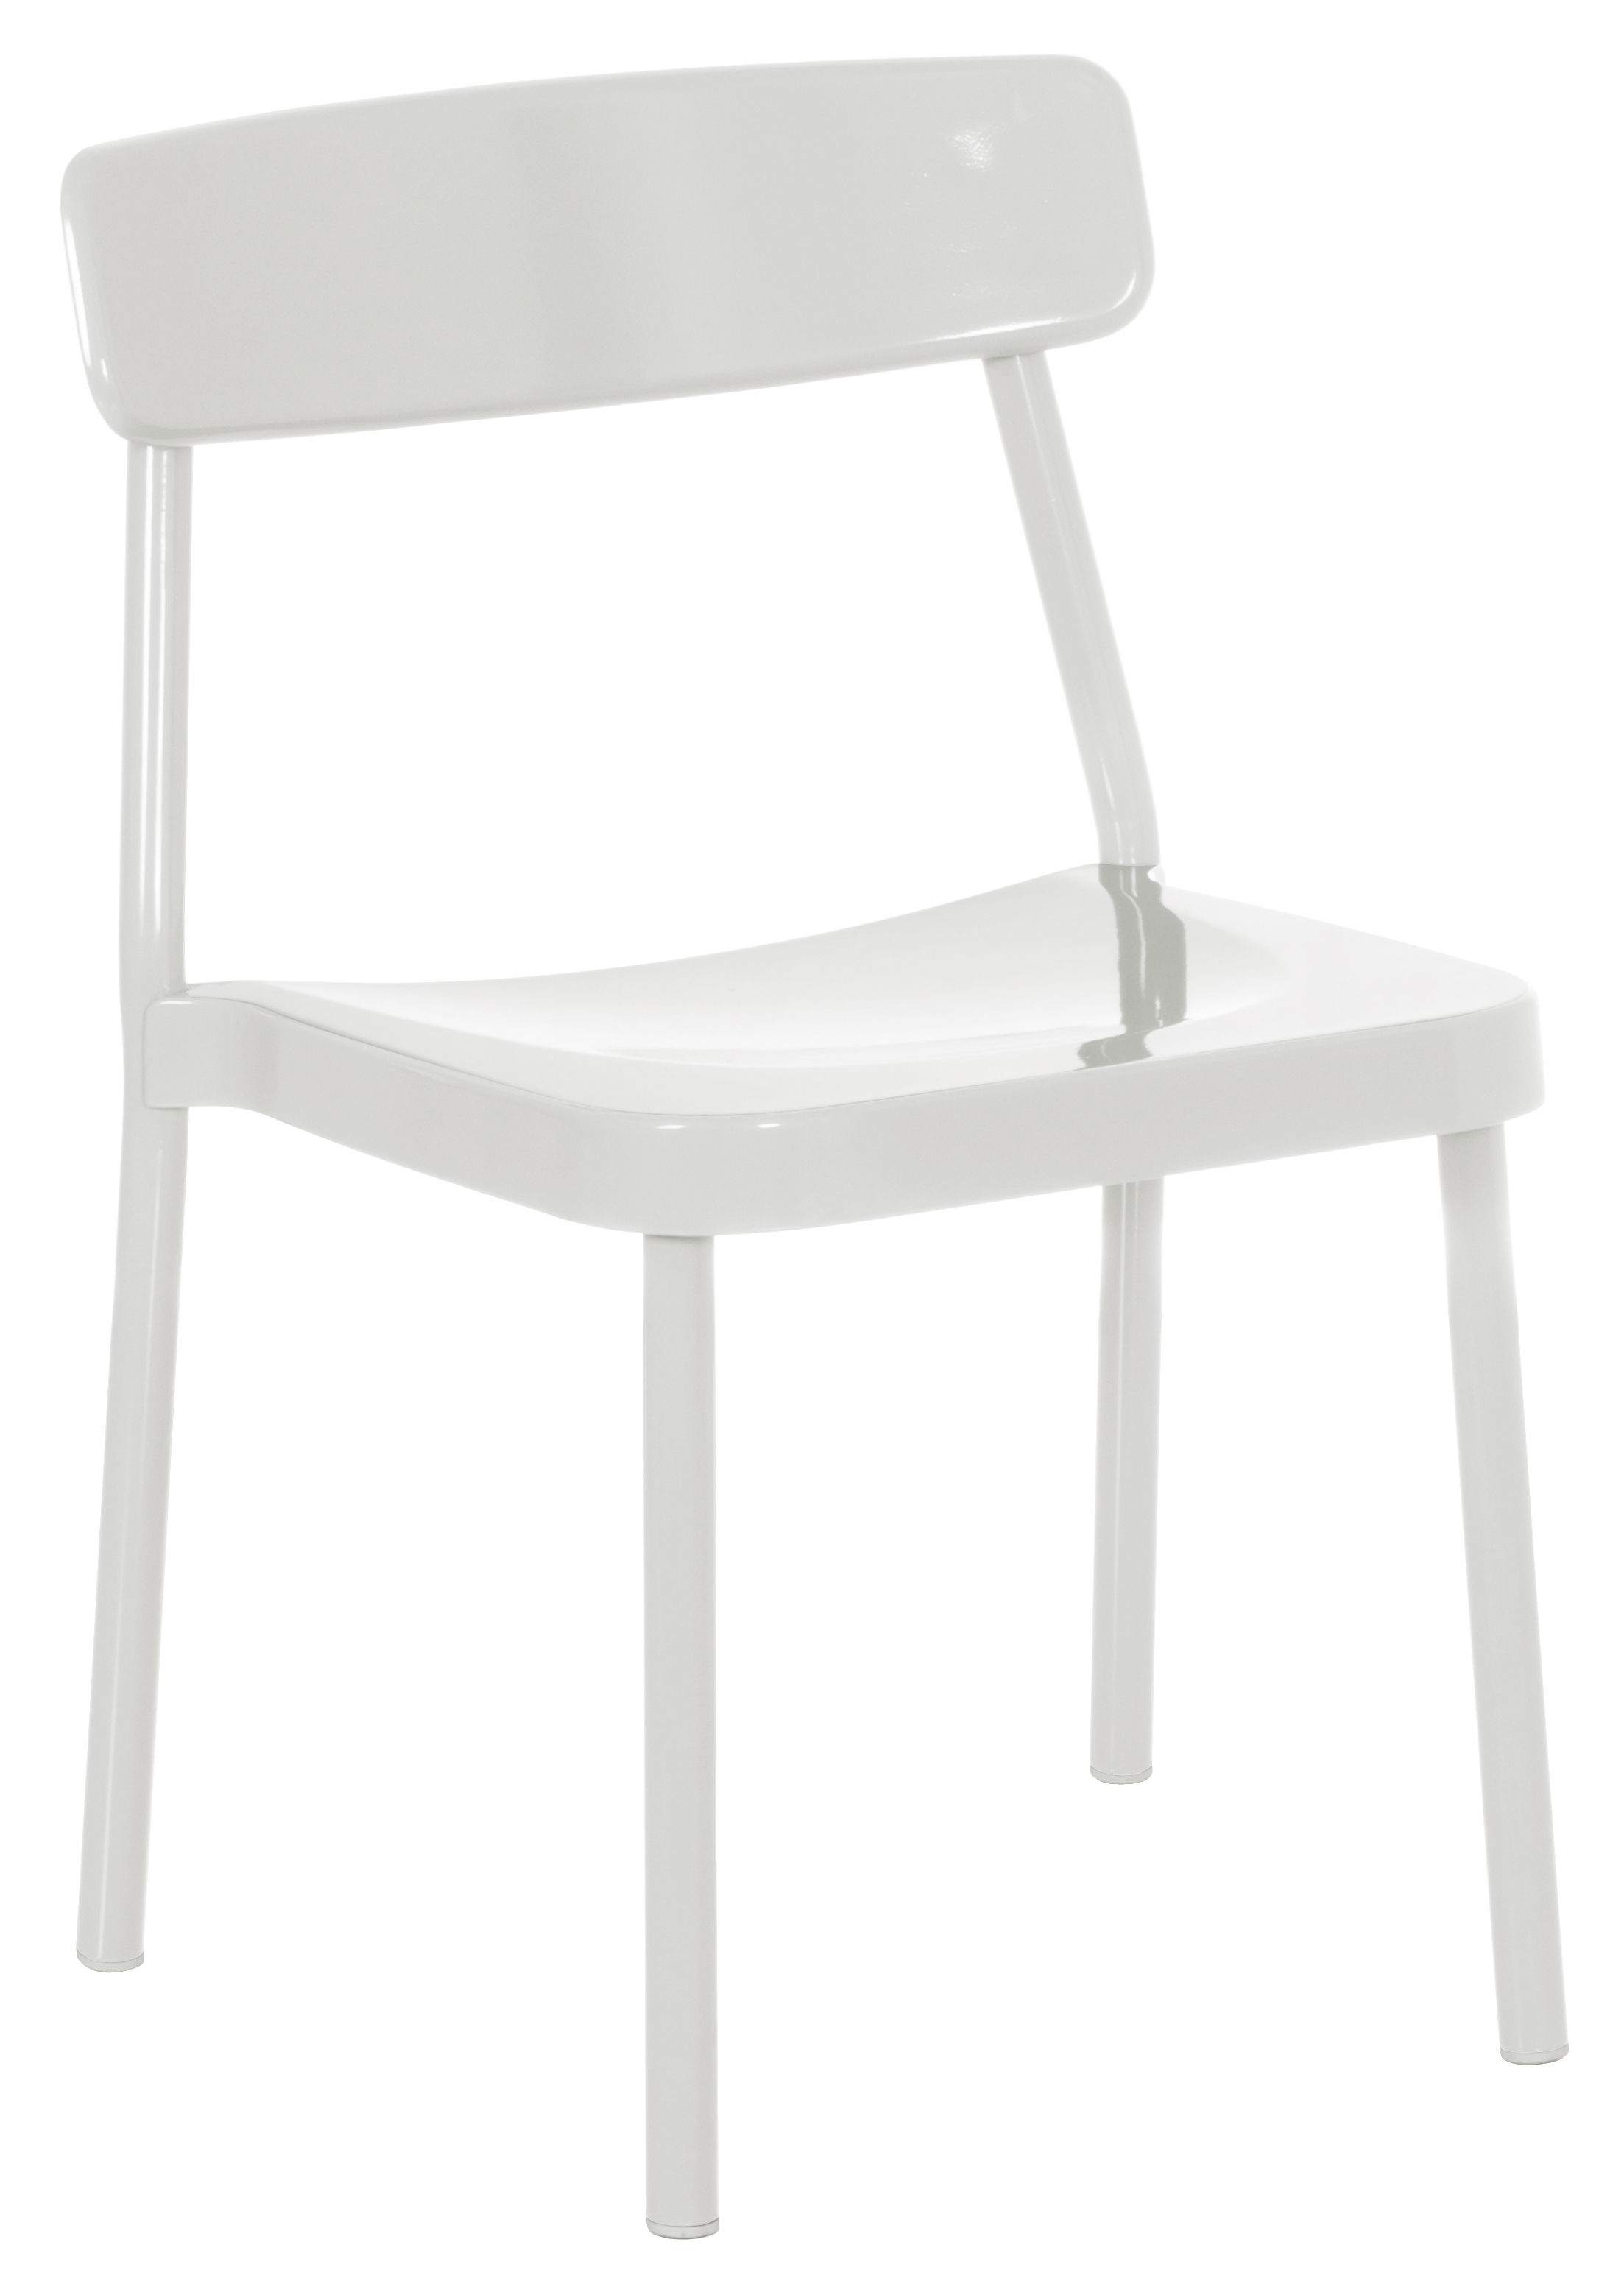 Furniture - Chairs - Grace Outdoor Stacking chair - Metal by Emu - White - Varnished aluminium